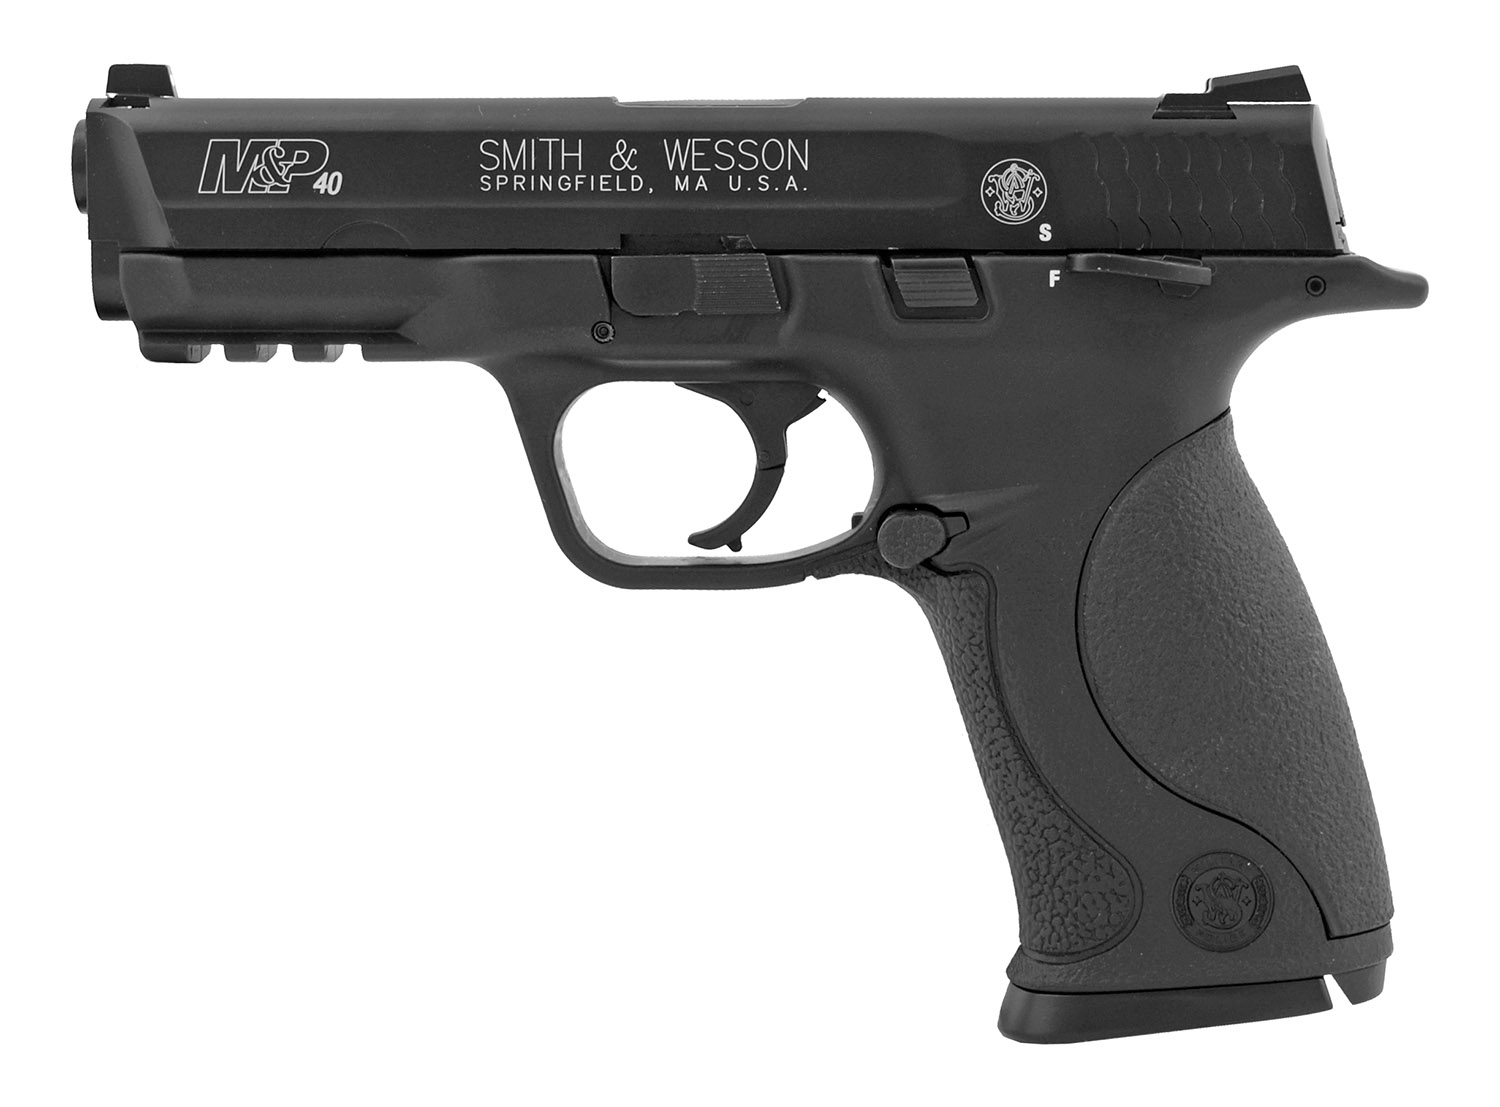 Smith & Wesson M&P 40 .177 Cal. Blowback CO2 BB Handgun - Refurbished